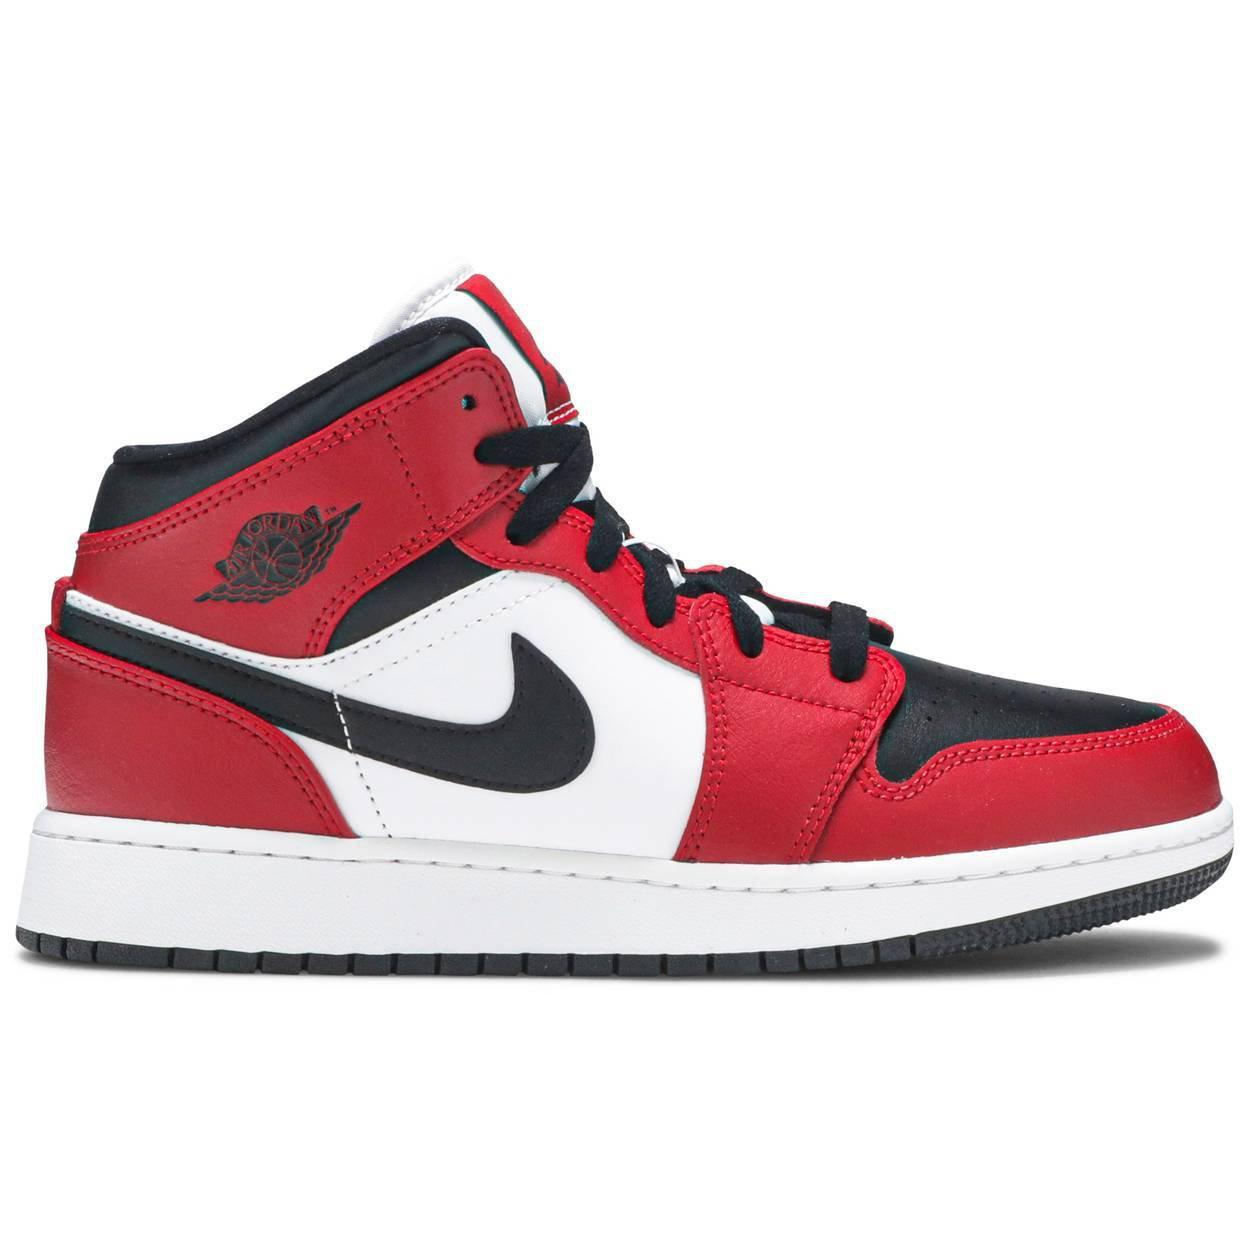 Nike Air Jordan 1 Mid GS 'Chicago Black Toe' | Waves Never Die | Nike | Sneakers